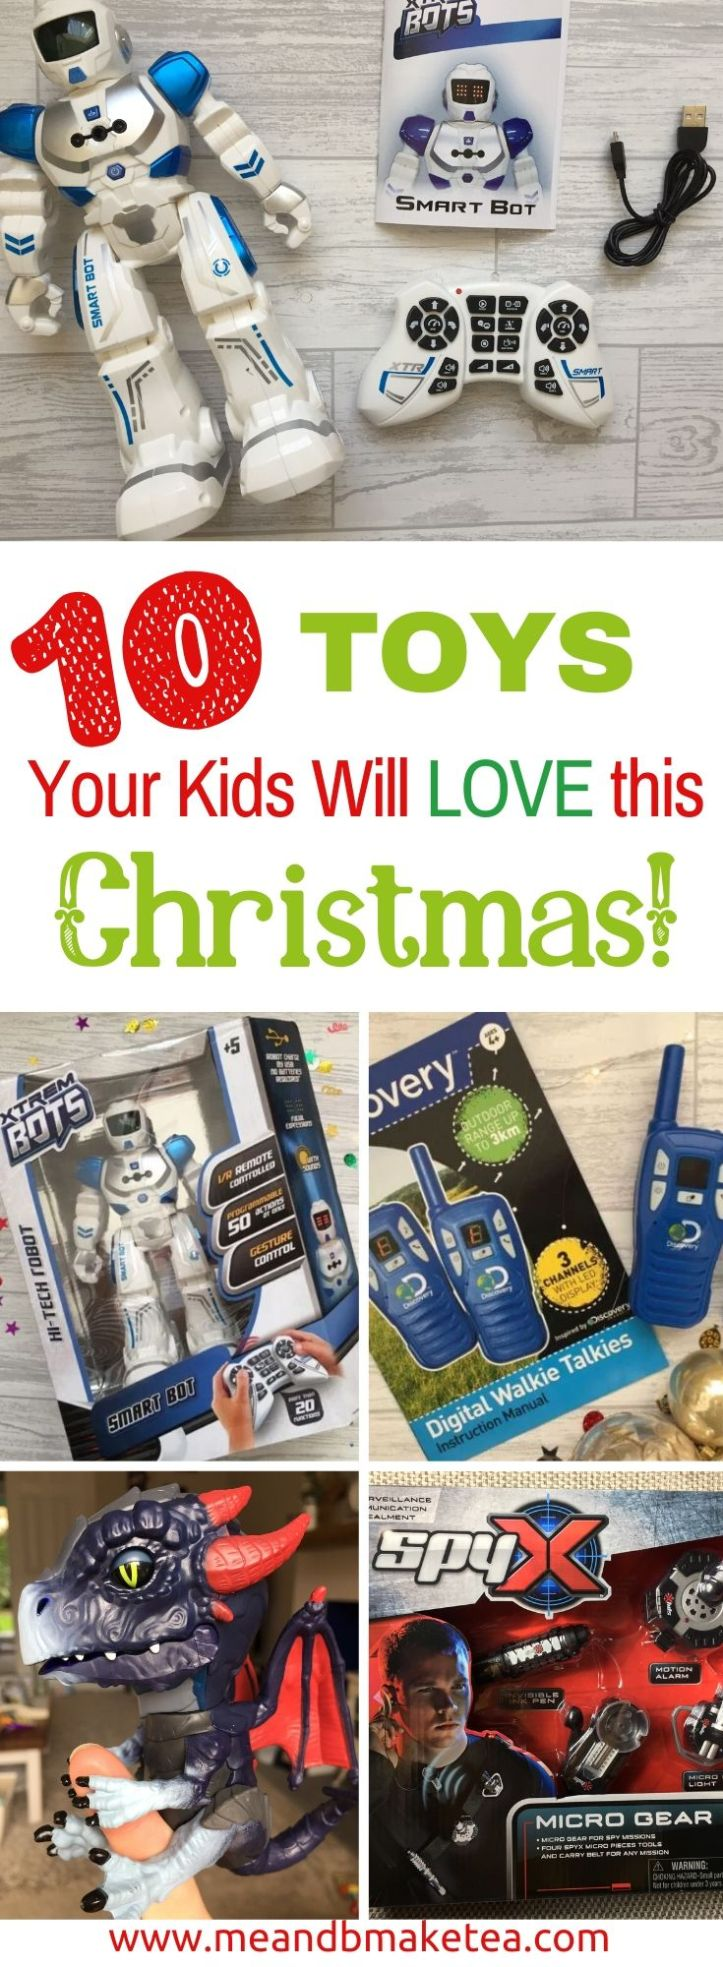 pinterest image - ten interactive toy ideas and reviews for kids this christmas